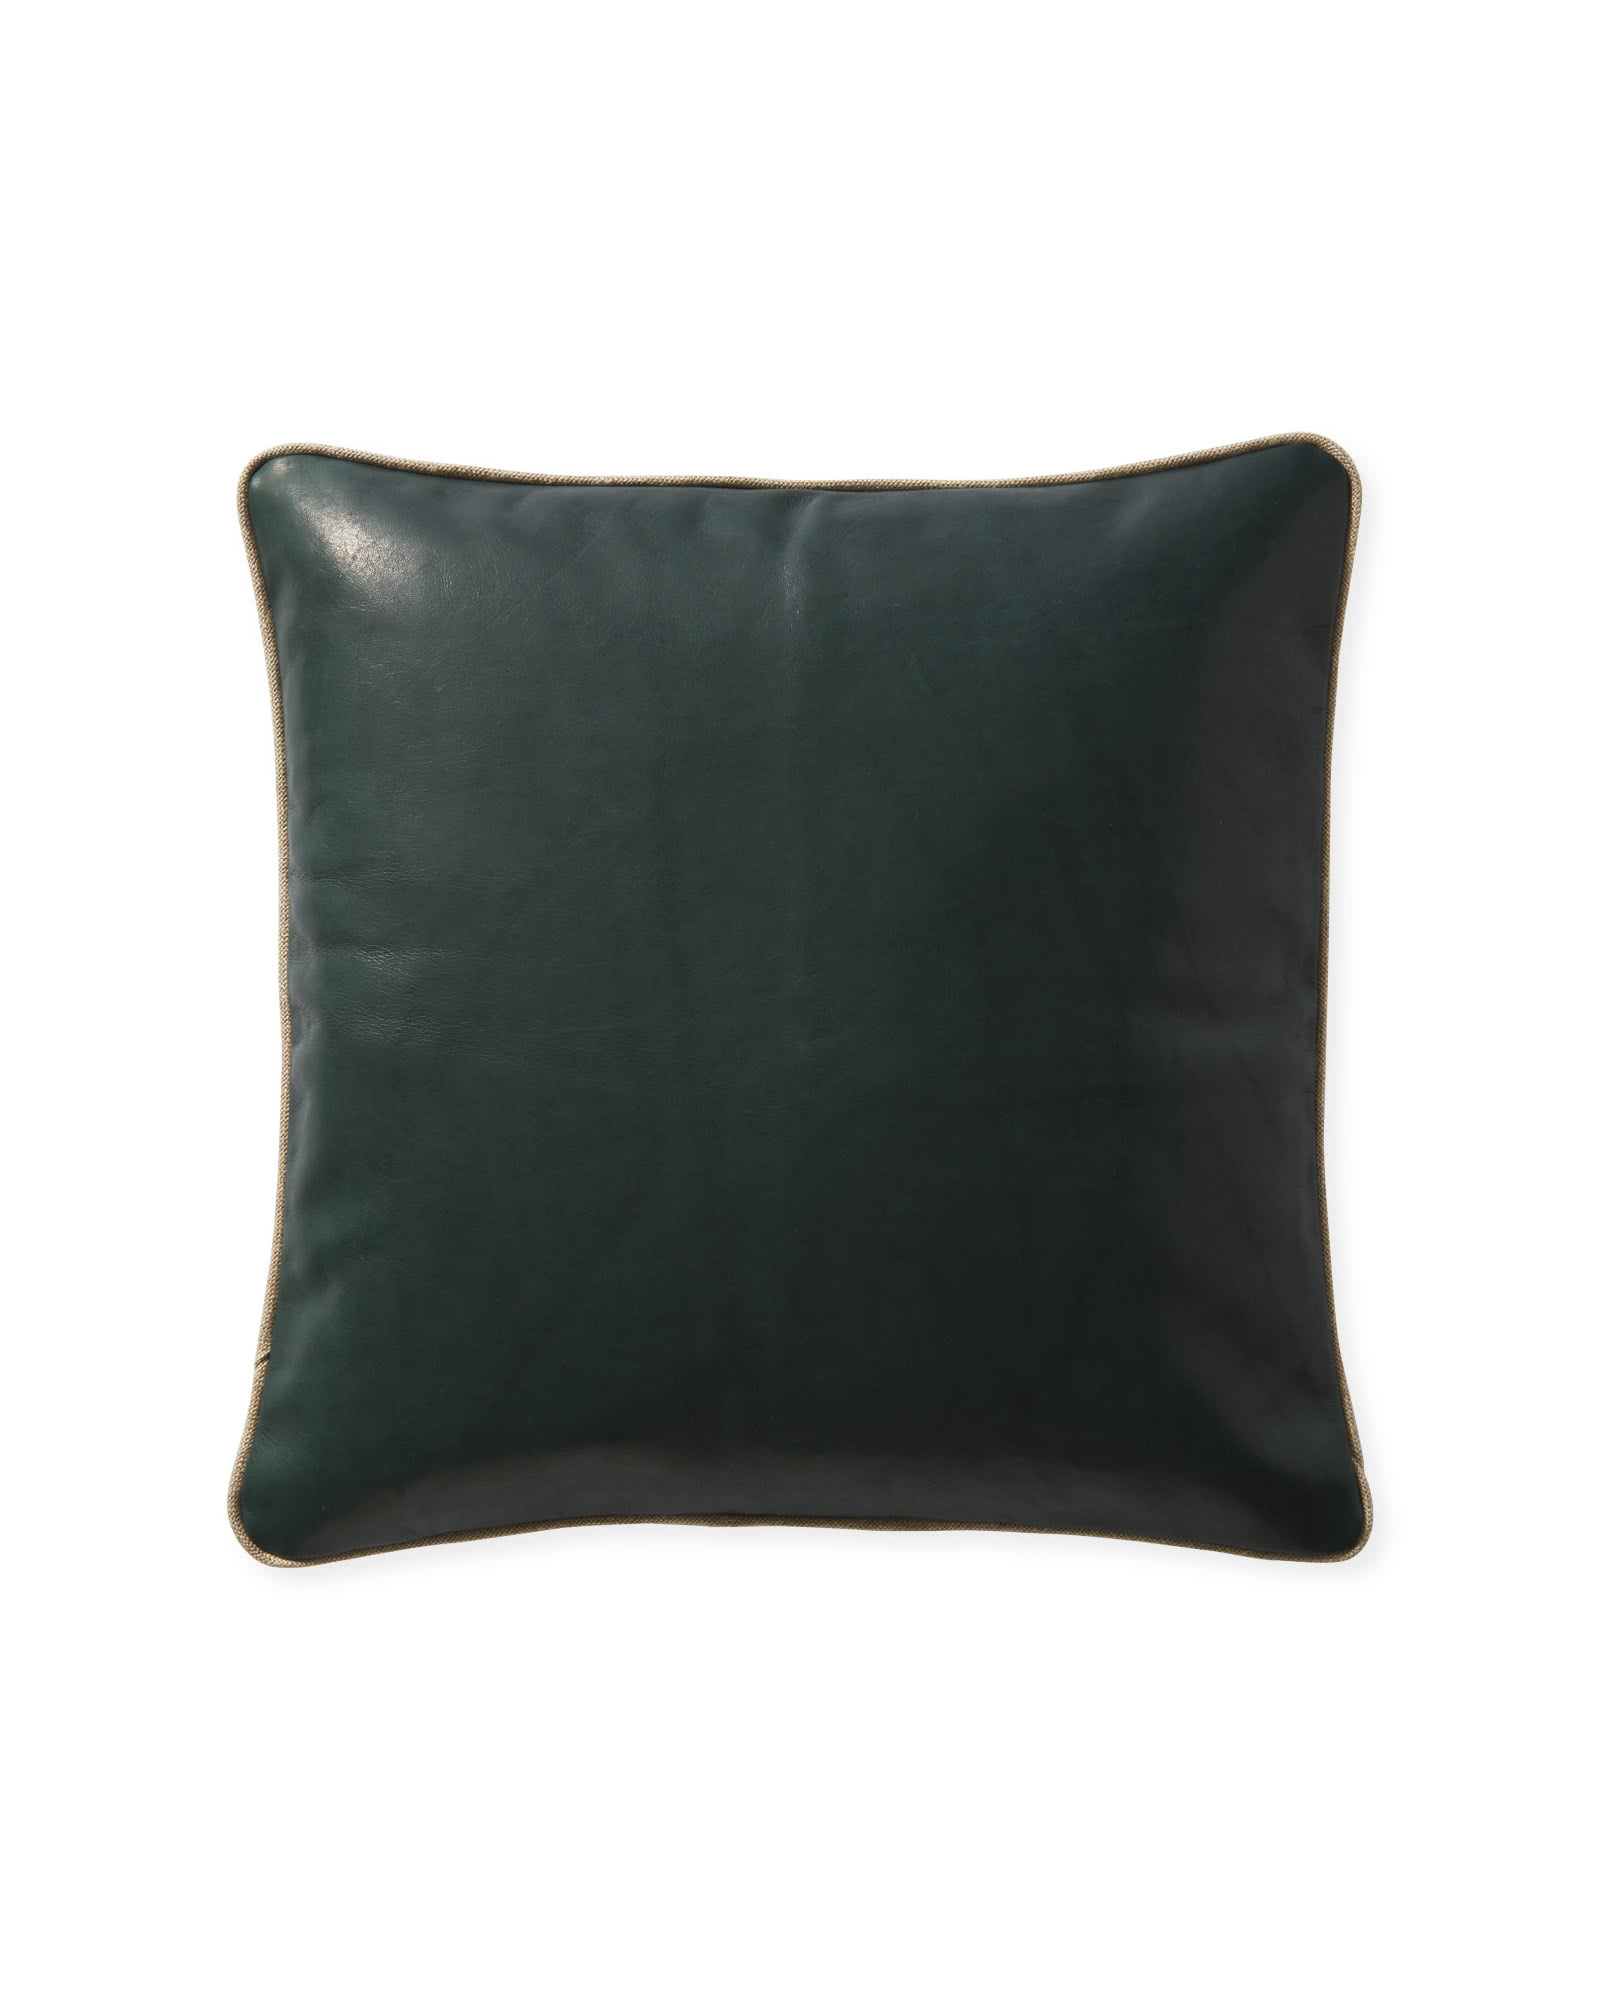 Leather Pillow Cover, Evergreen